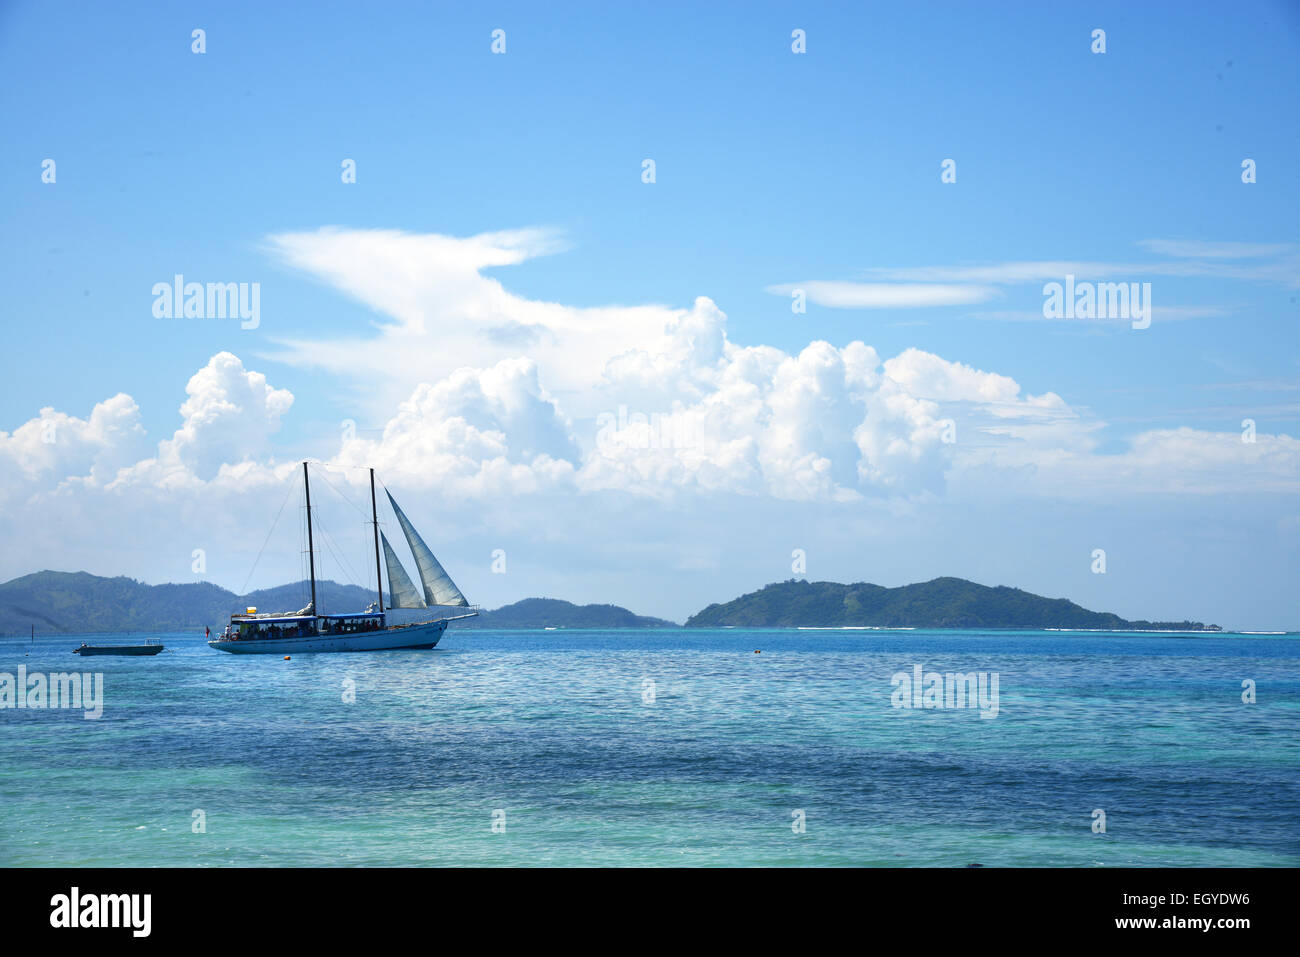 A sail boat cruises off the island of Malolo, Fiji. - Stock Image